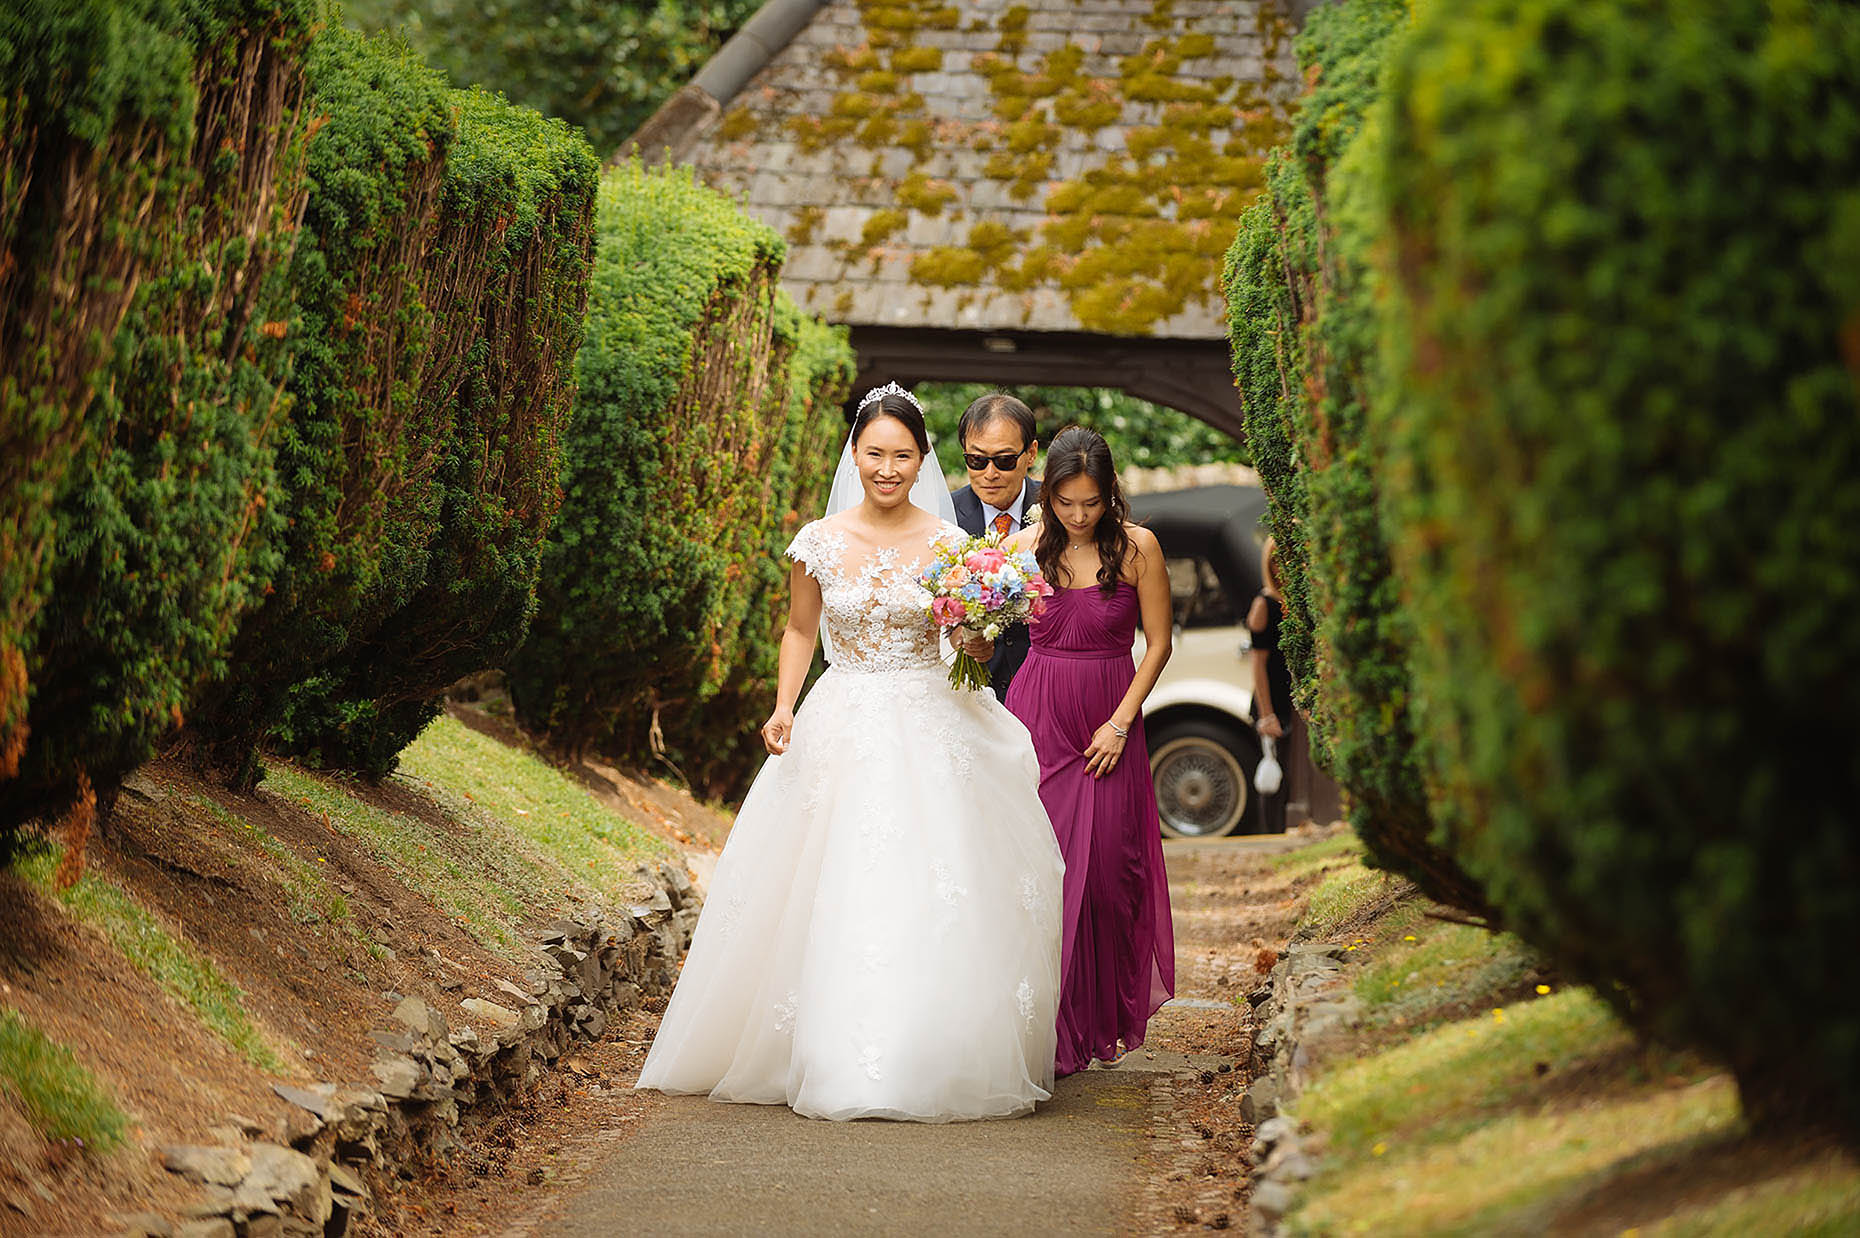 beaumanor-hall-wedding-bride-church-chay-dress-happy-walking-04